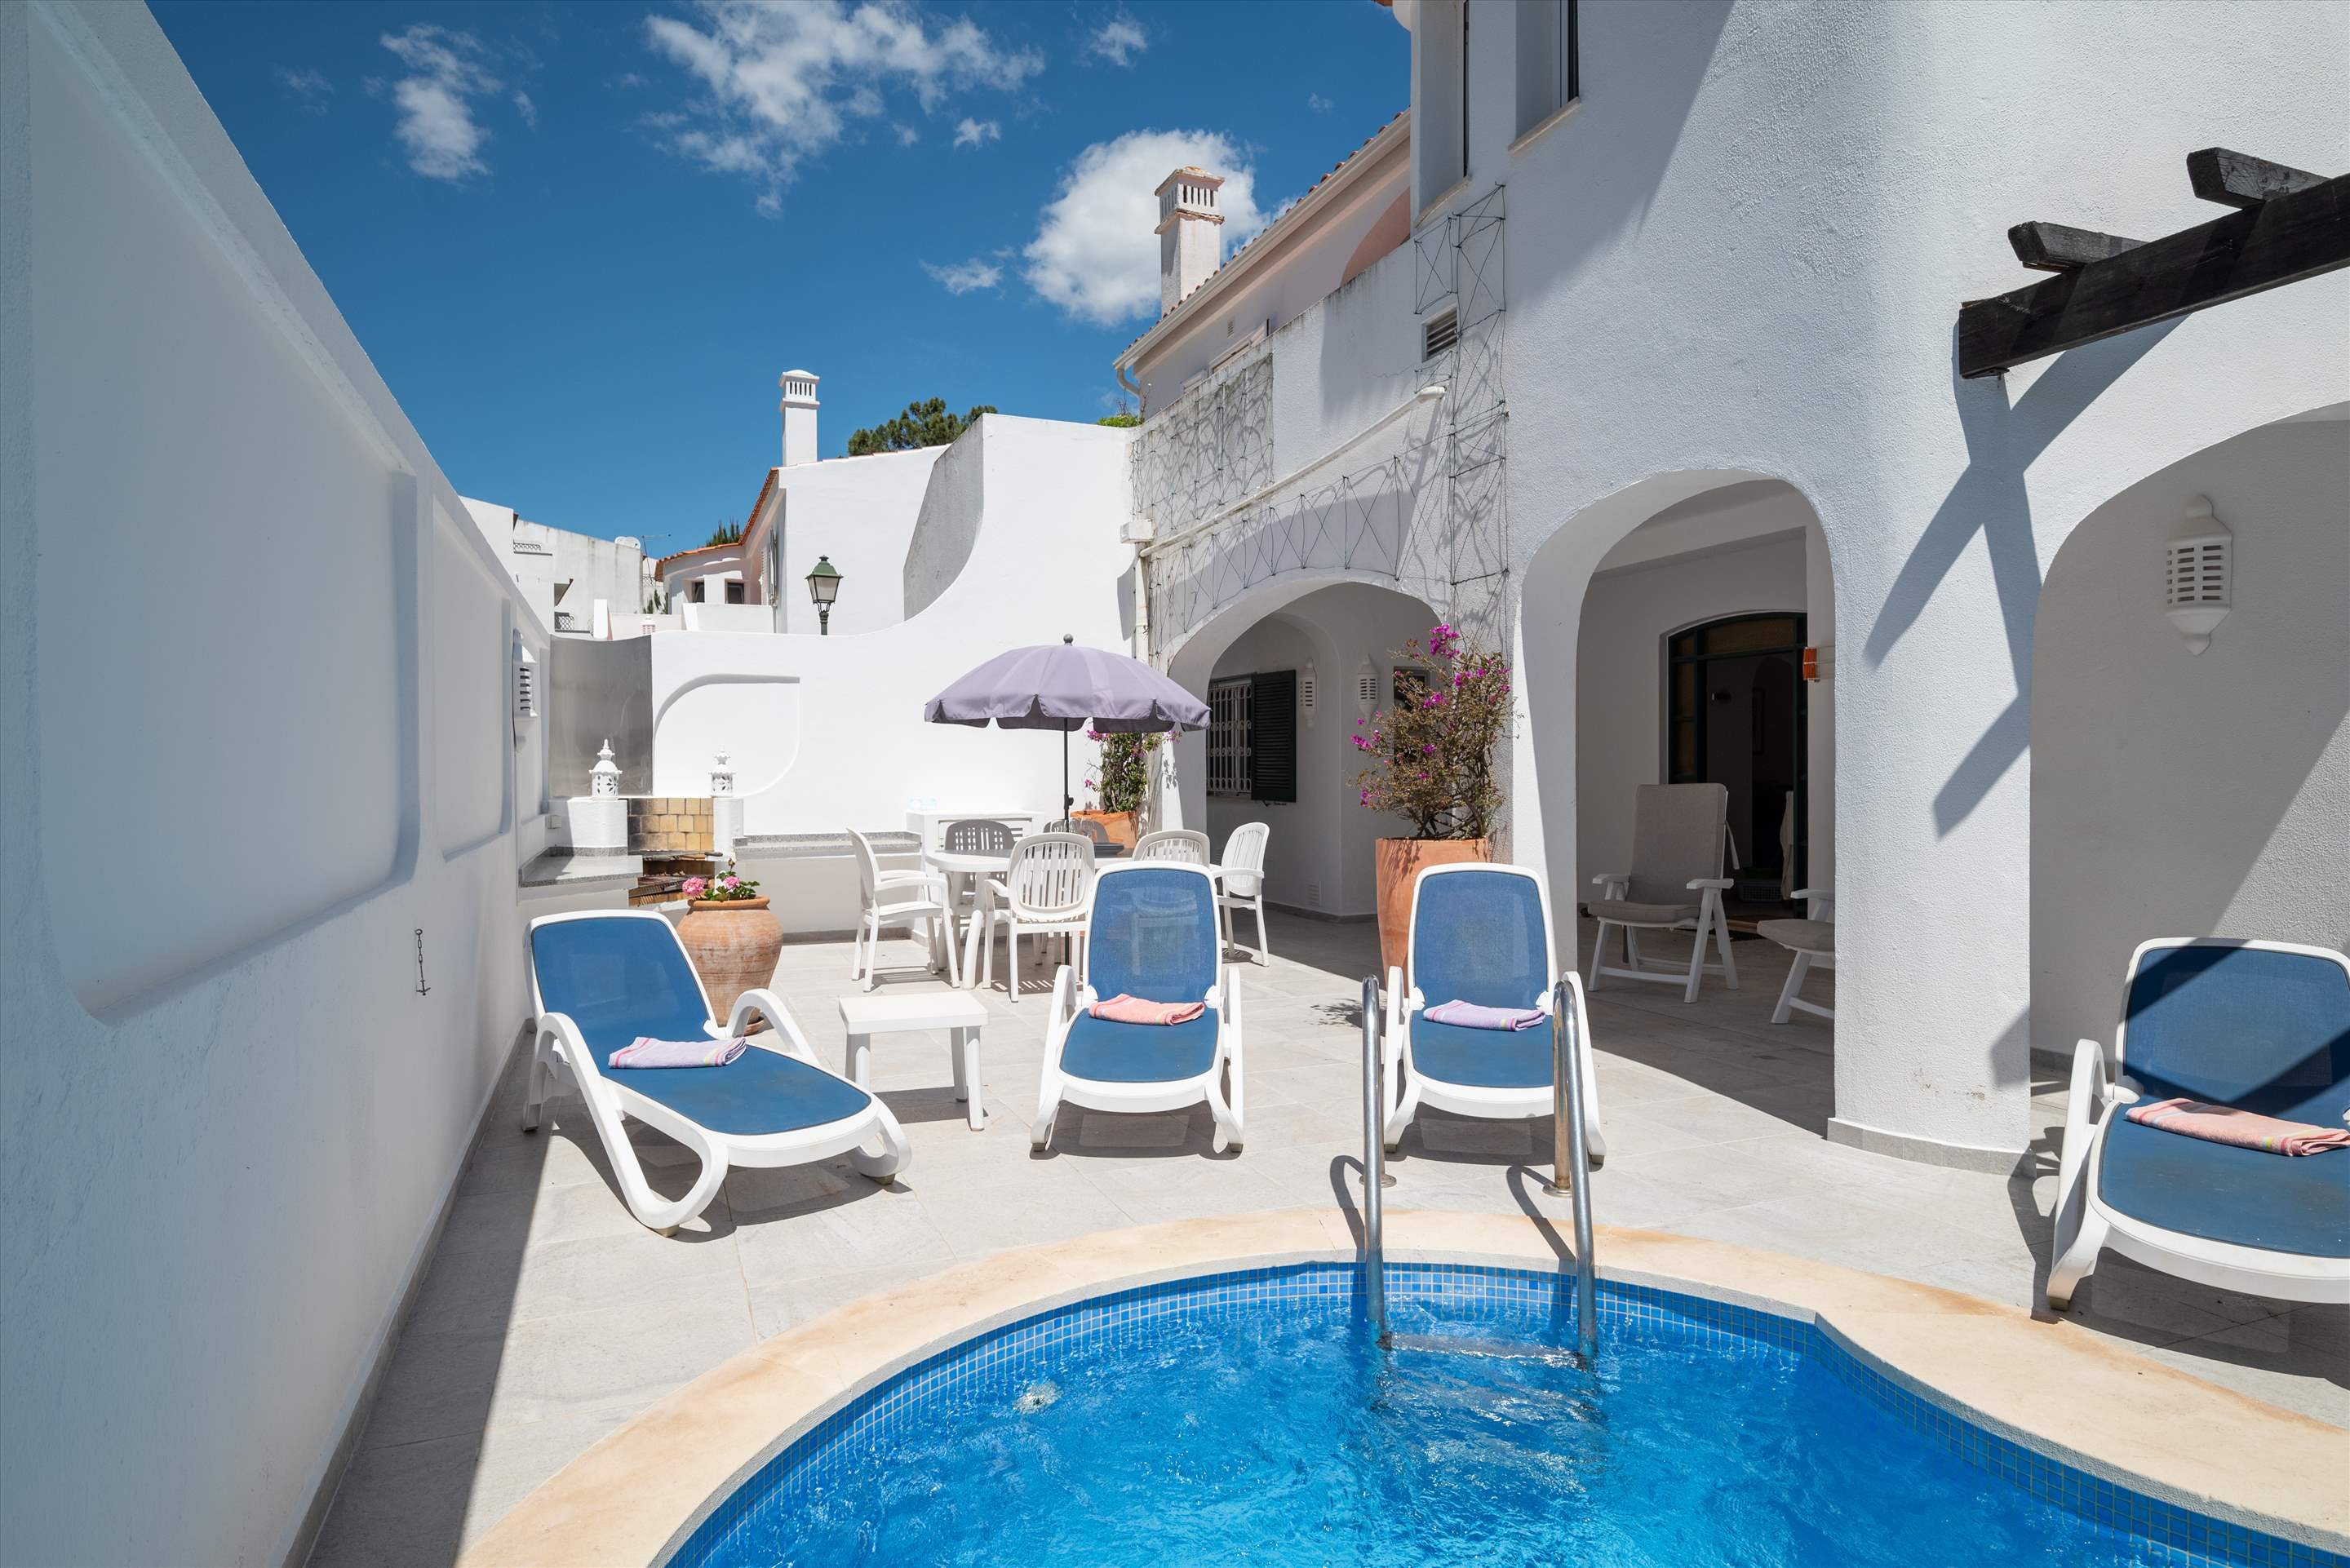 Casa Bella, 3 bedroom apartment in Vale do Lobo, Algarve Photo #18